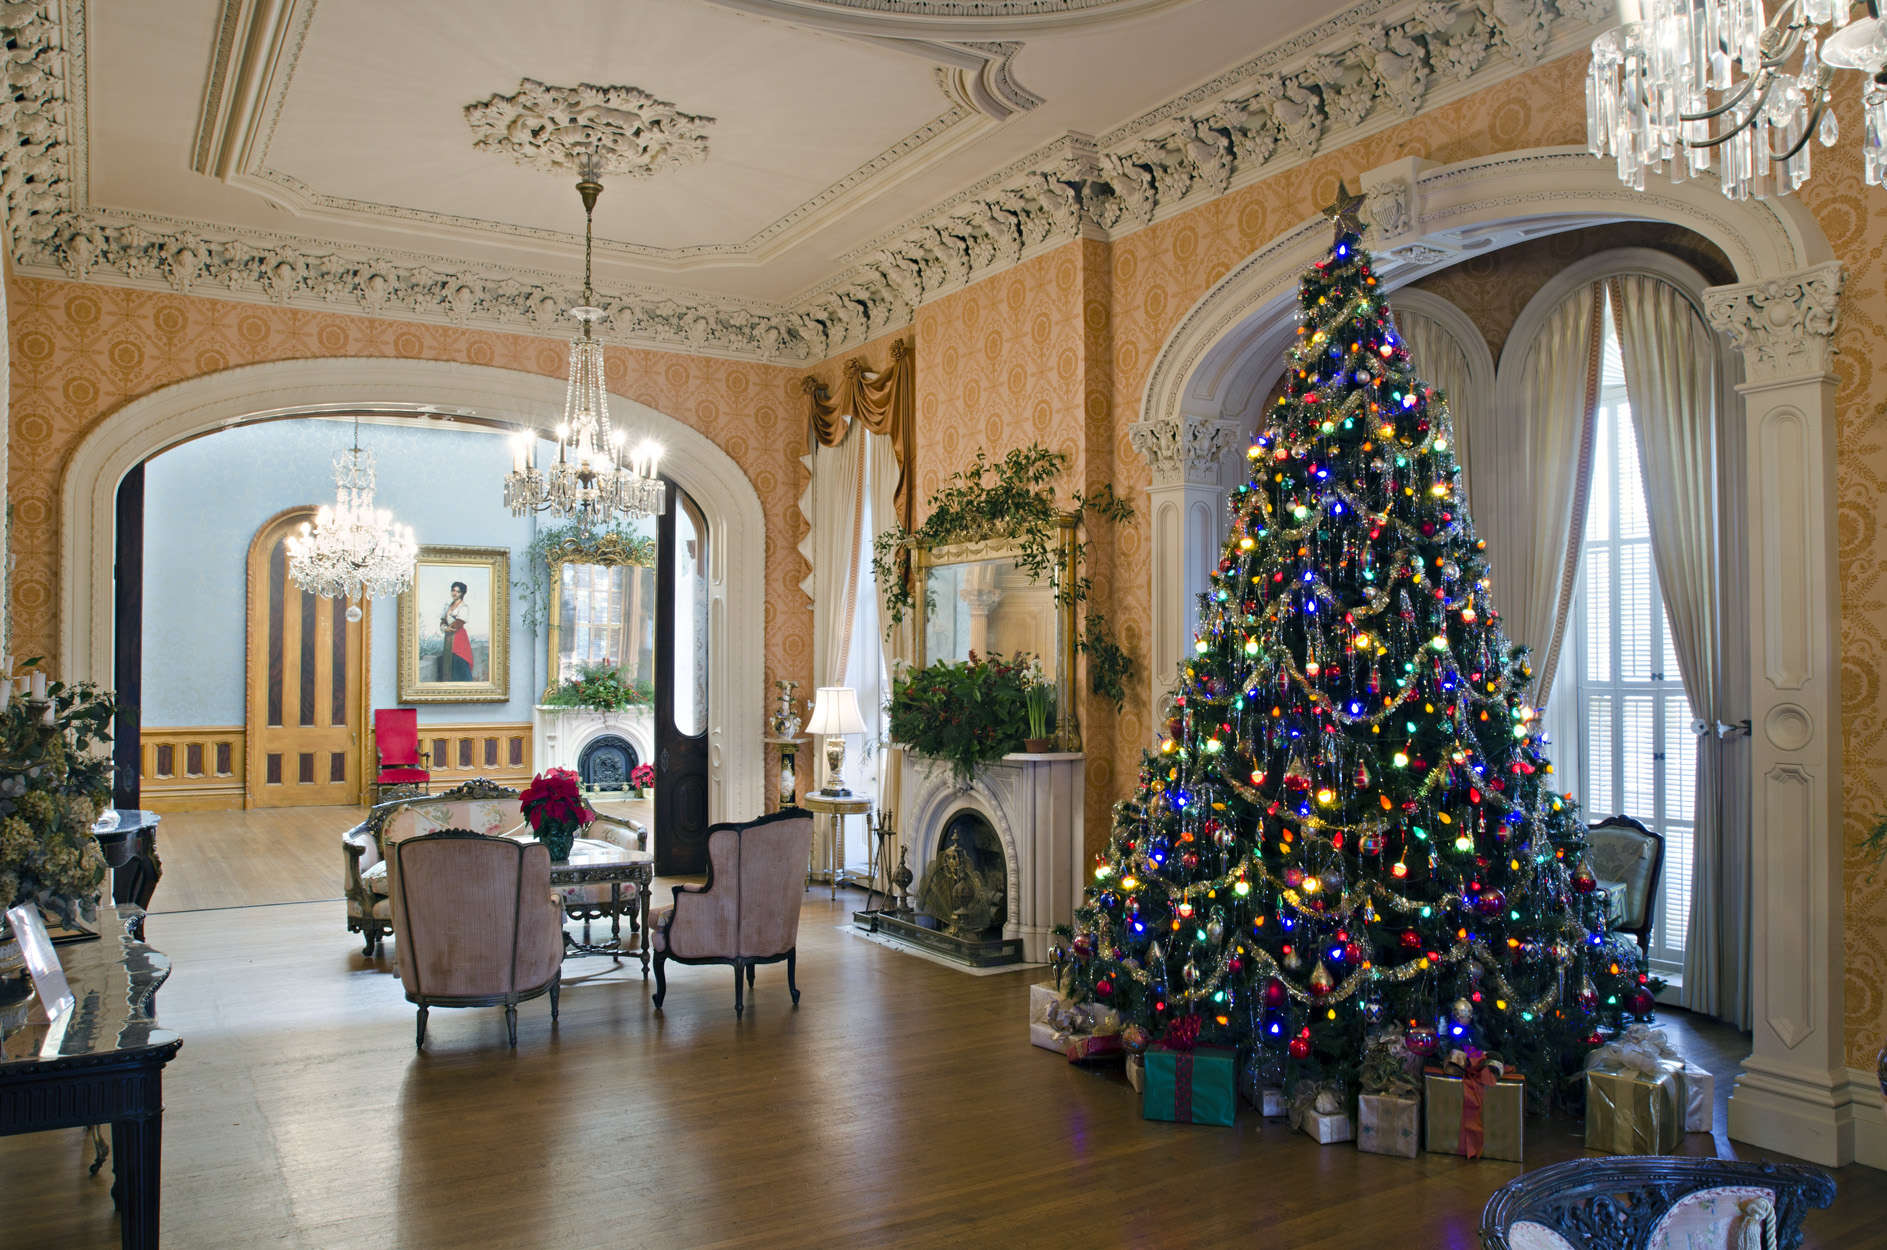 Holiday Events & Celebrations in Macon | Schedule